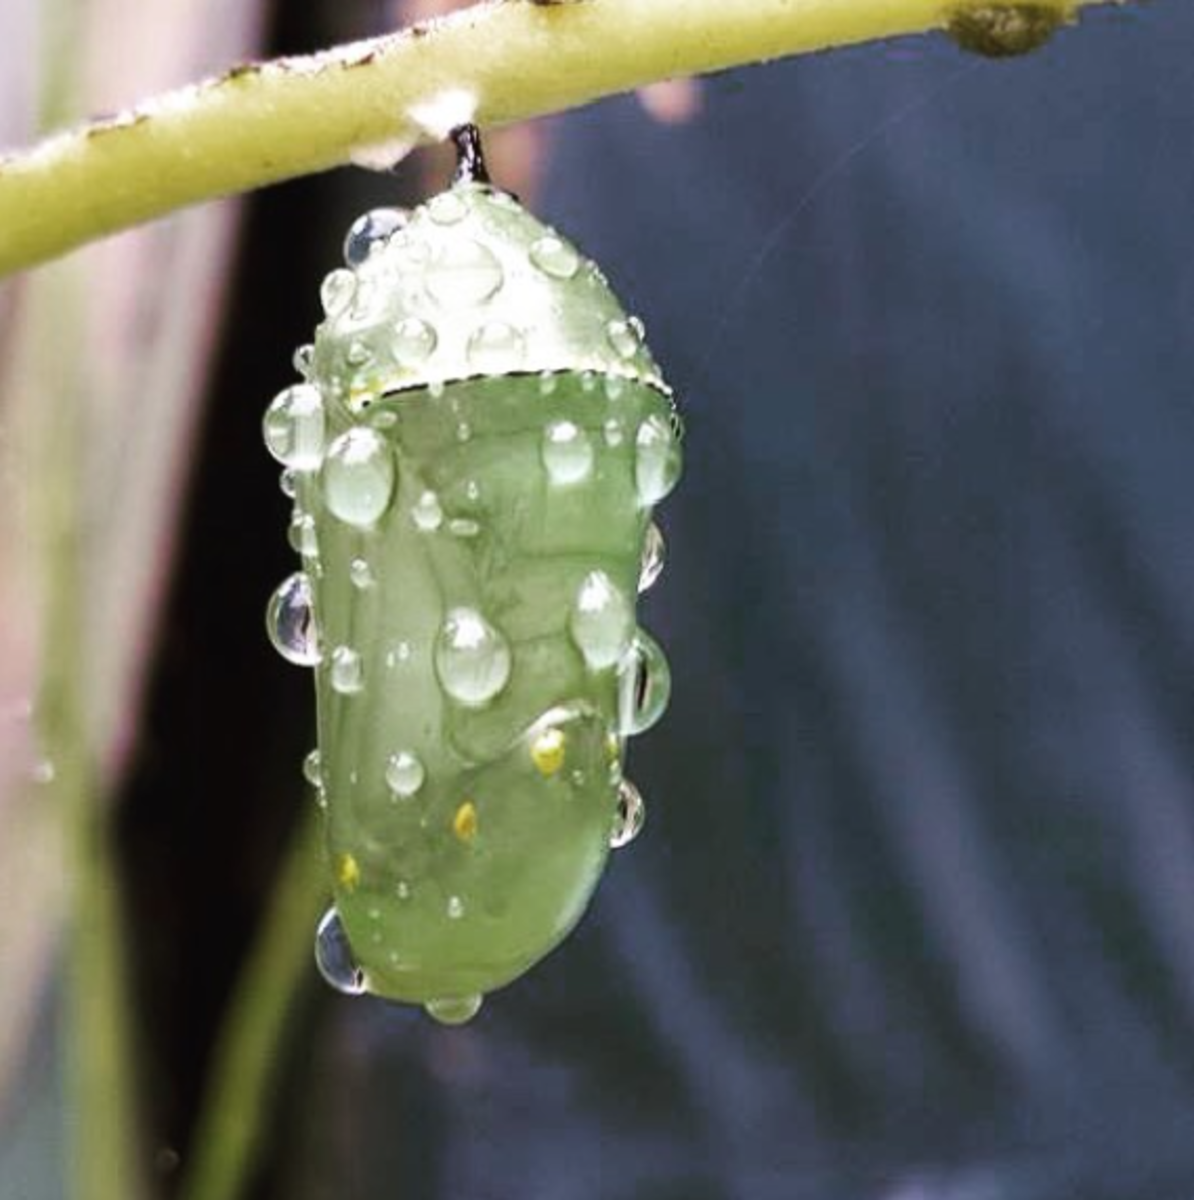 A monarch develops inside a dewy chrysalis.